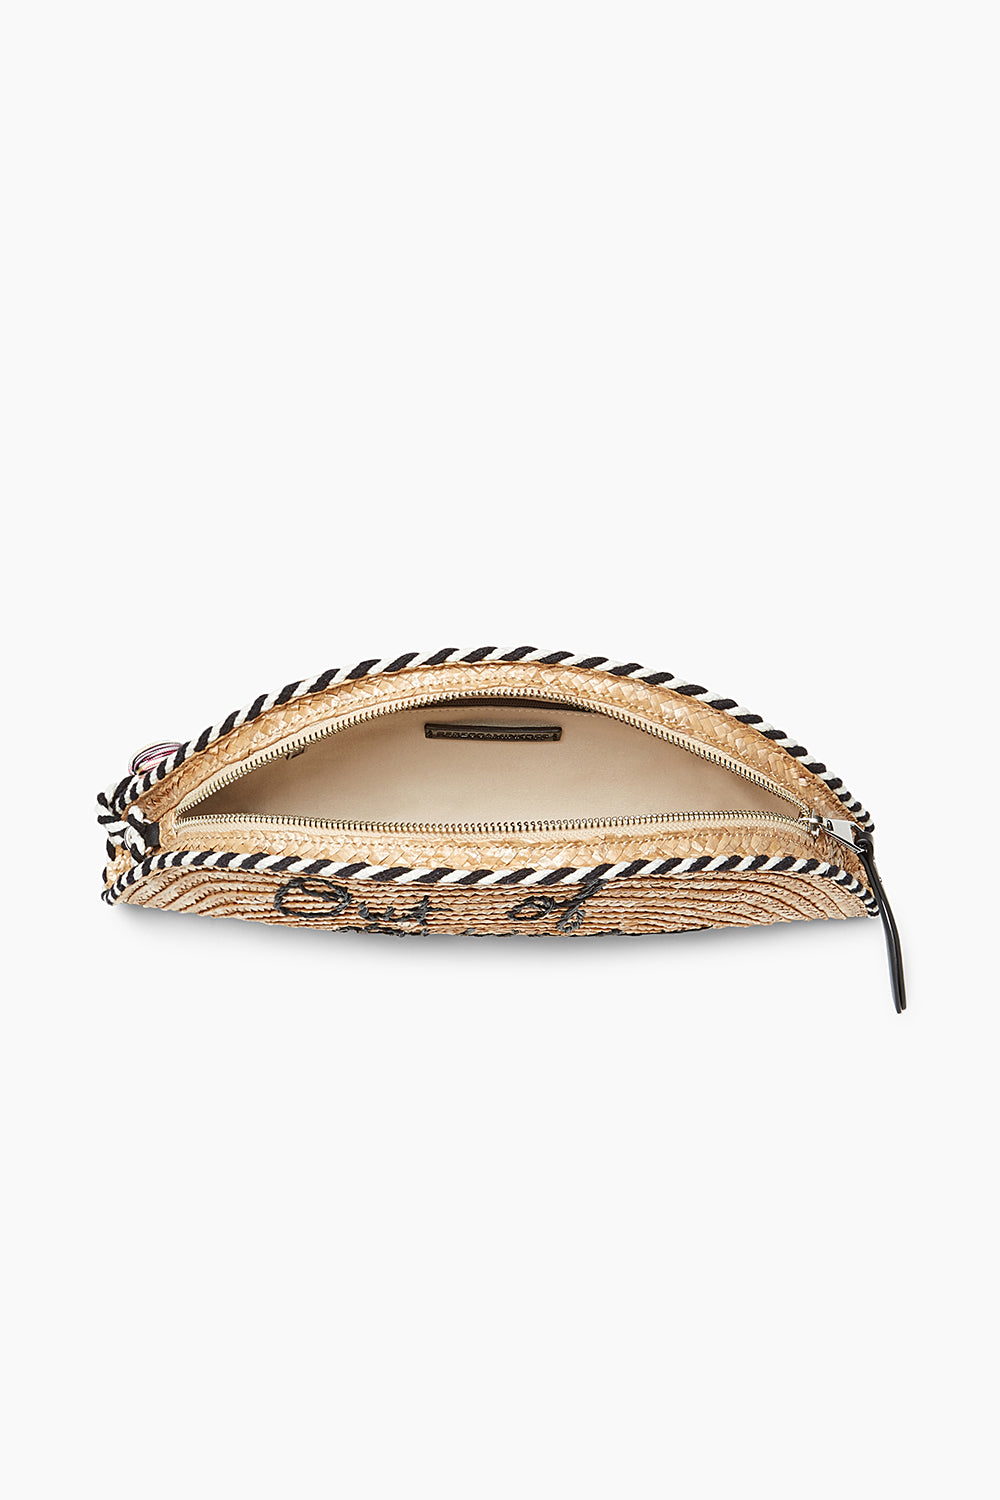 Straw Taco Clutch - Out Of Office